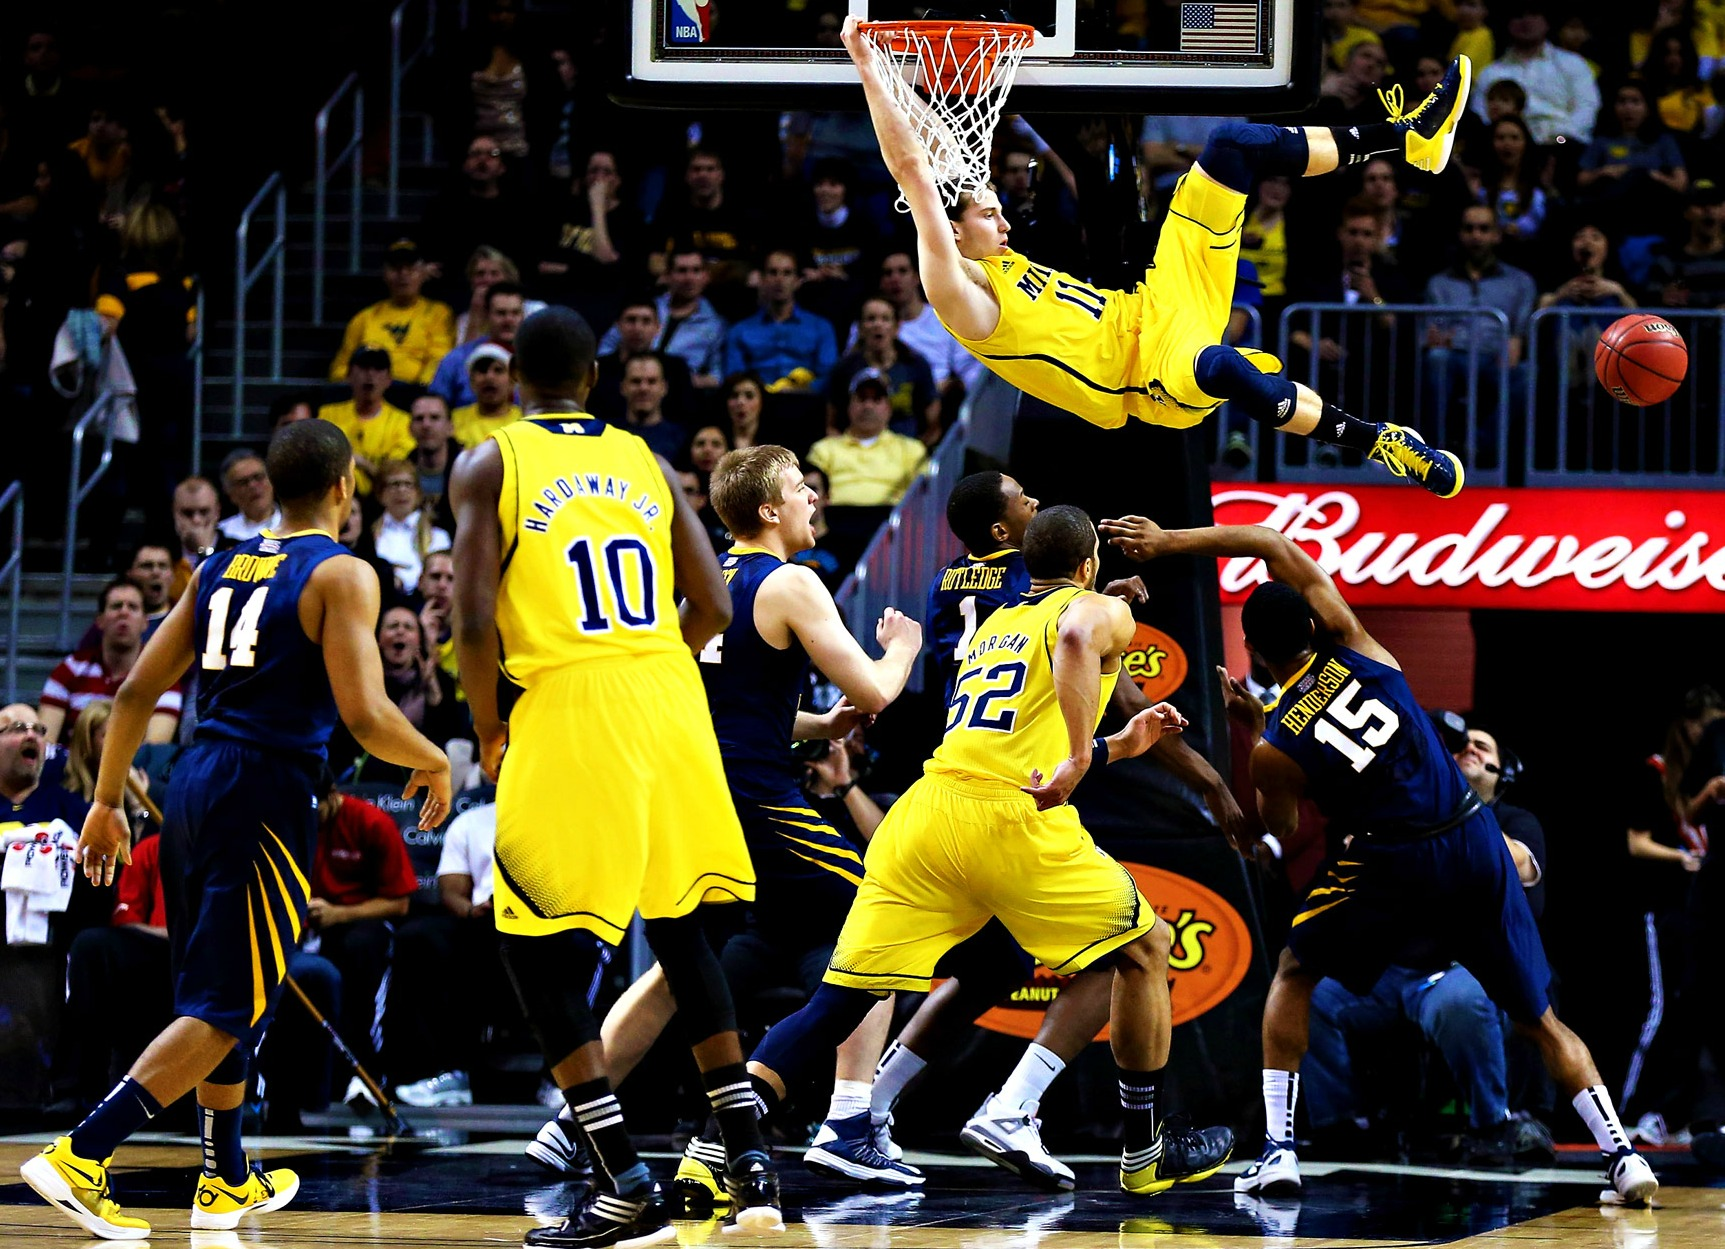 Nik Stauskas is more than a 3-point shooter